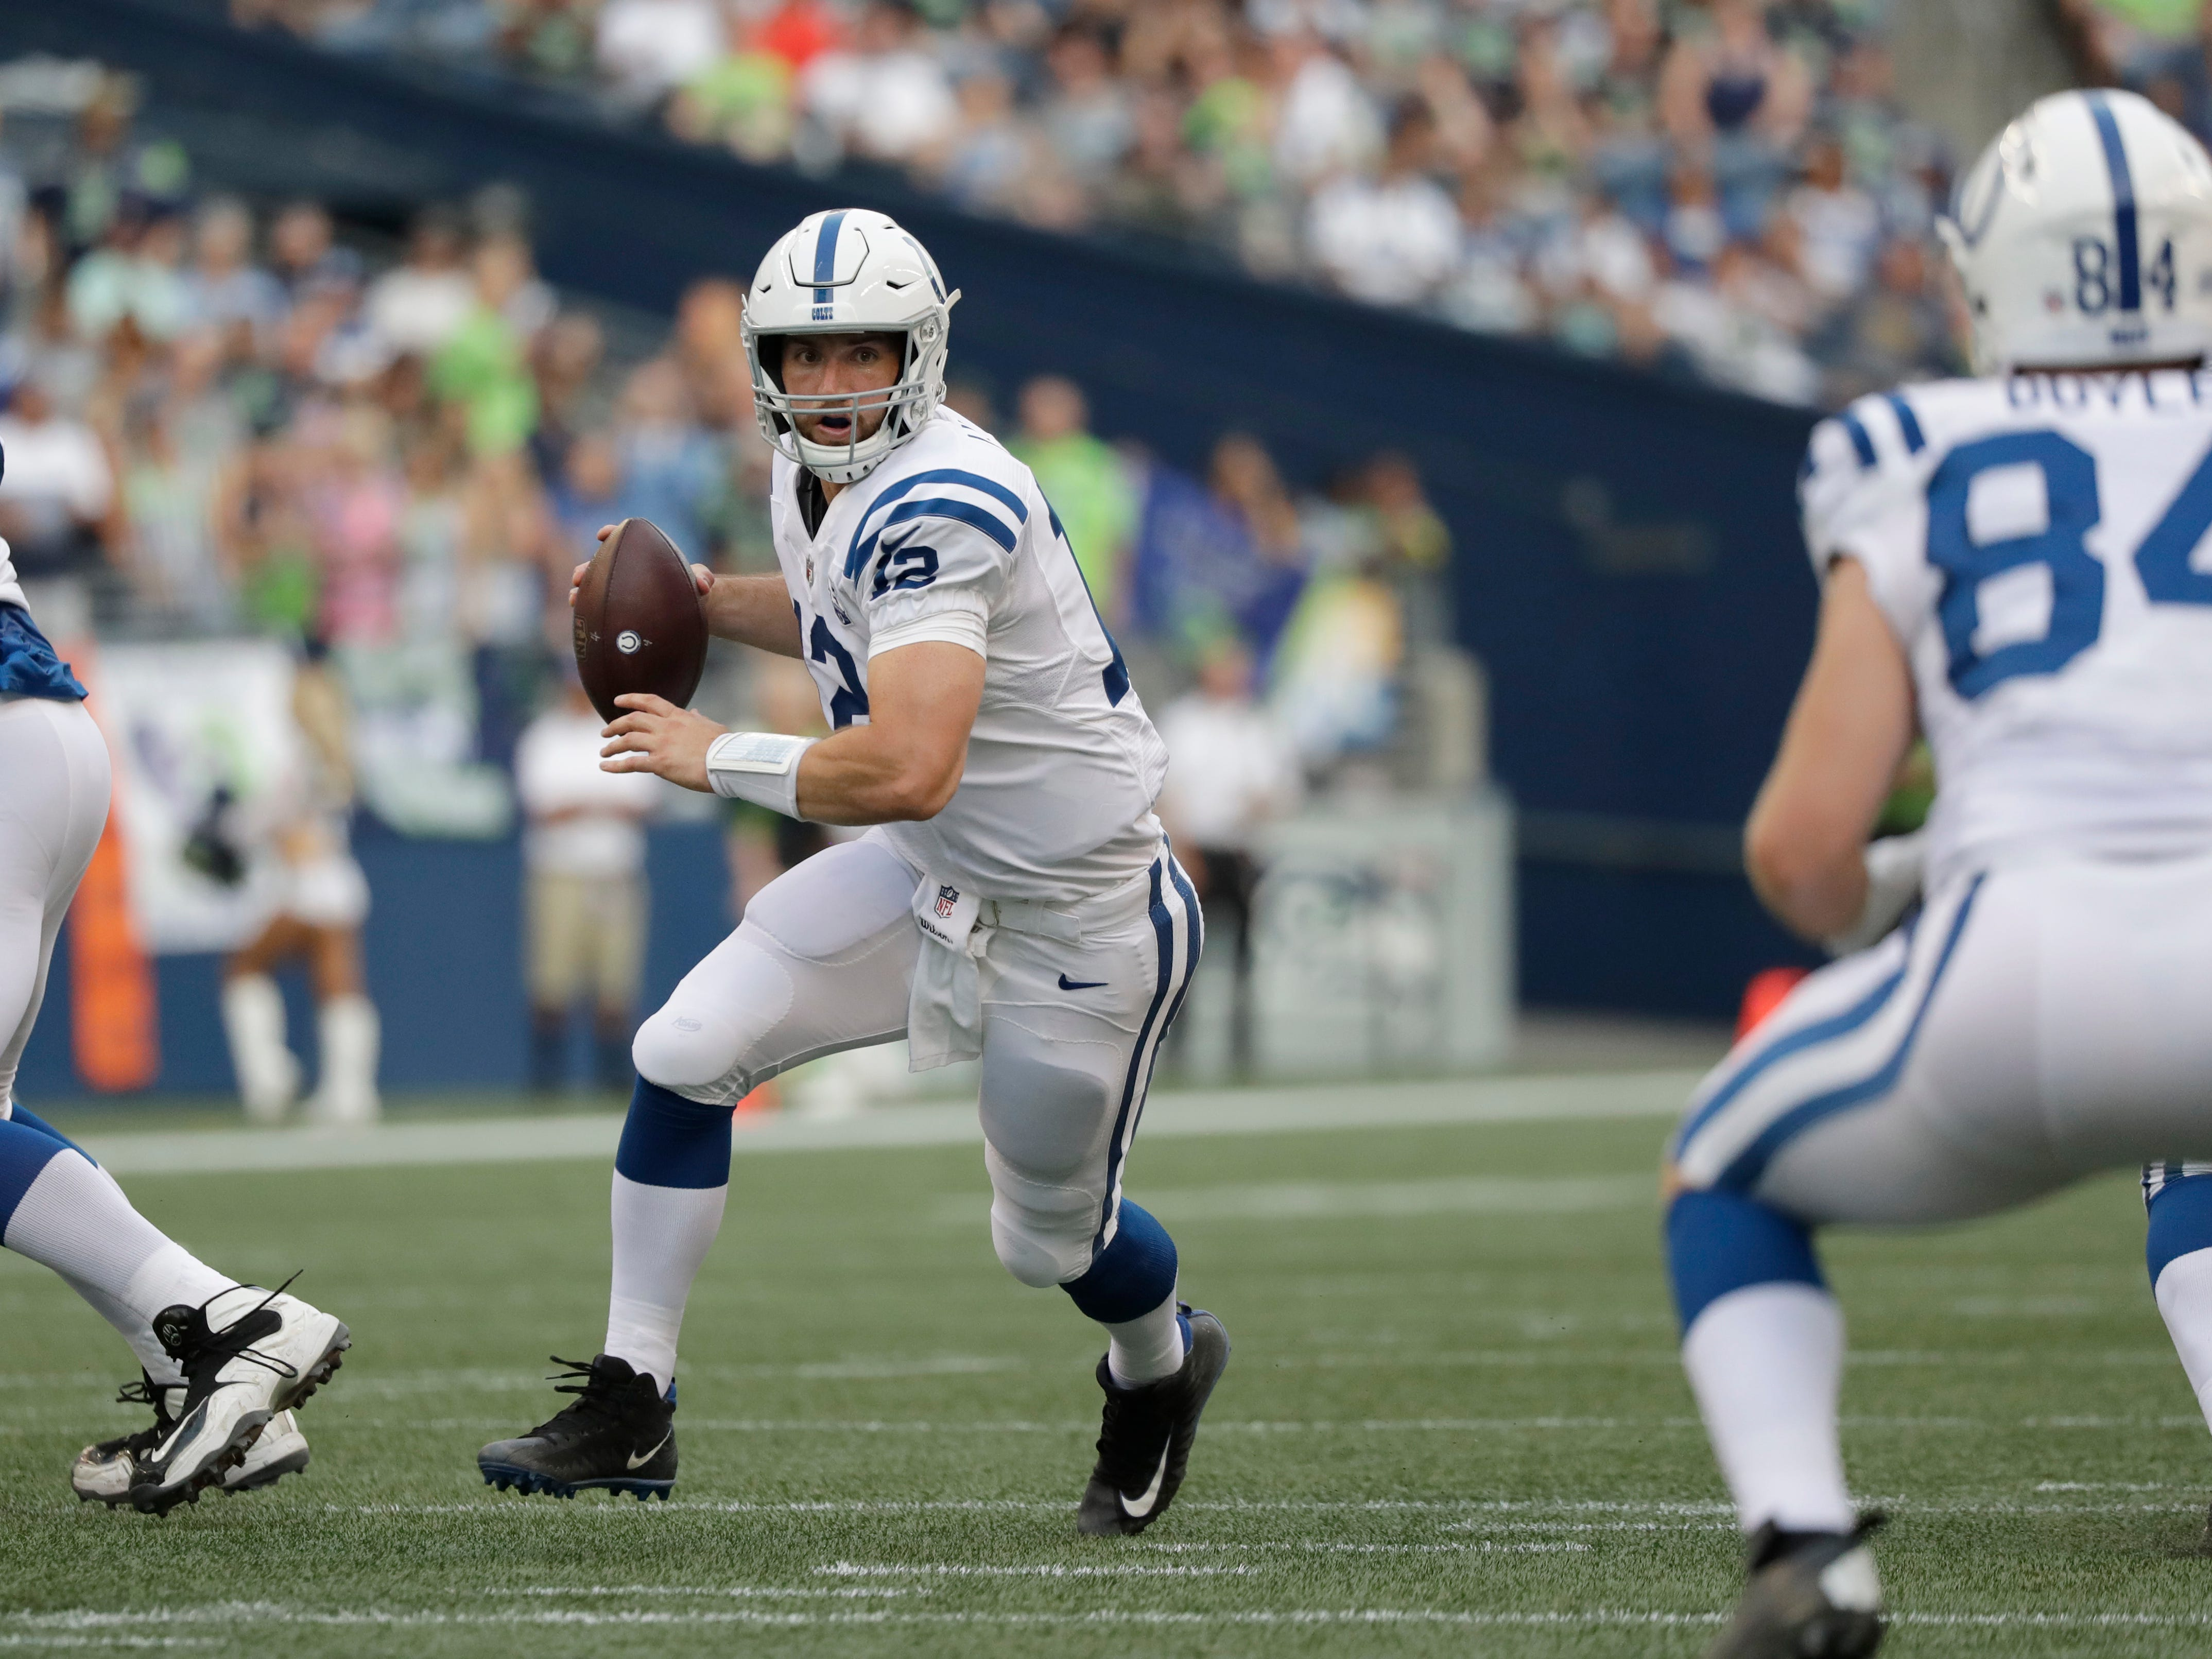 Indianapolis Colts quarterback Andrew Luck scrambles with the ball against the Seattle Seahawks during the first half of an NFL football preseason game, Thursday, Aug. 9, 2018, in Seattle. (AP Photo/Elaine Thompson)